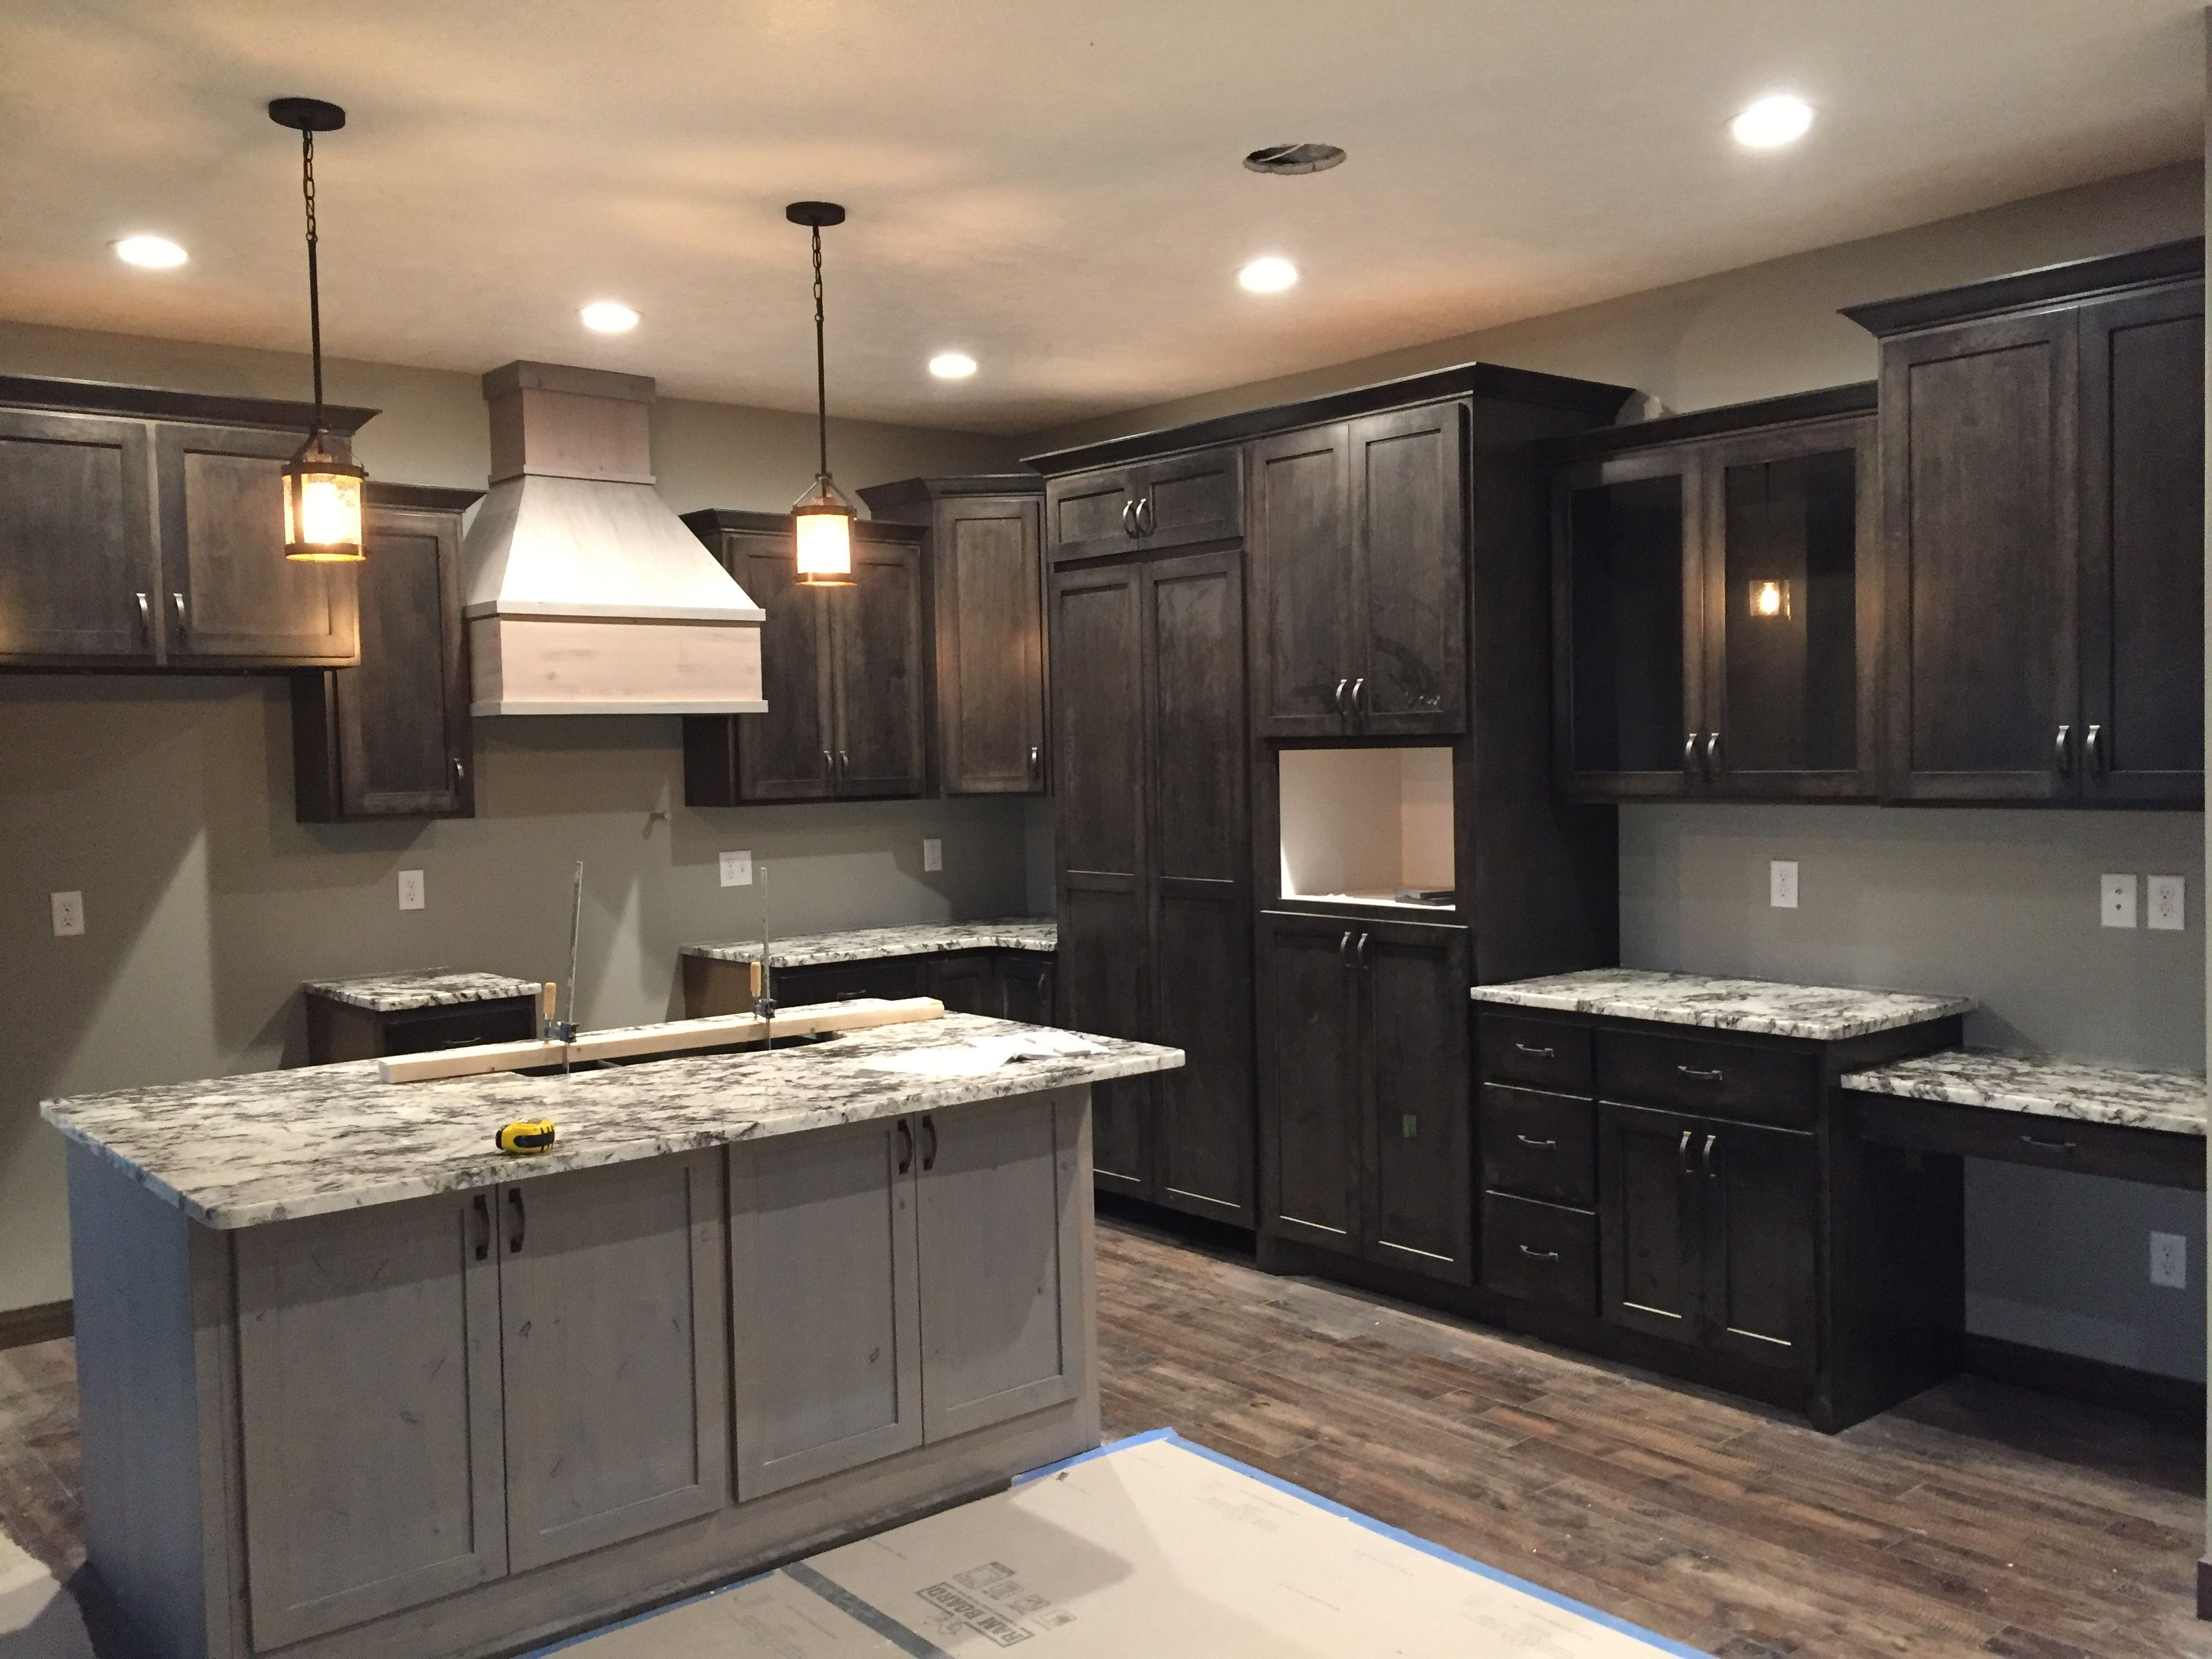 Dark Cabinets With Light Island And Hood Kitchen Dark Kitchen Kitchen Cabinets